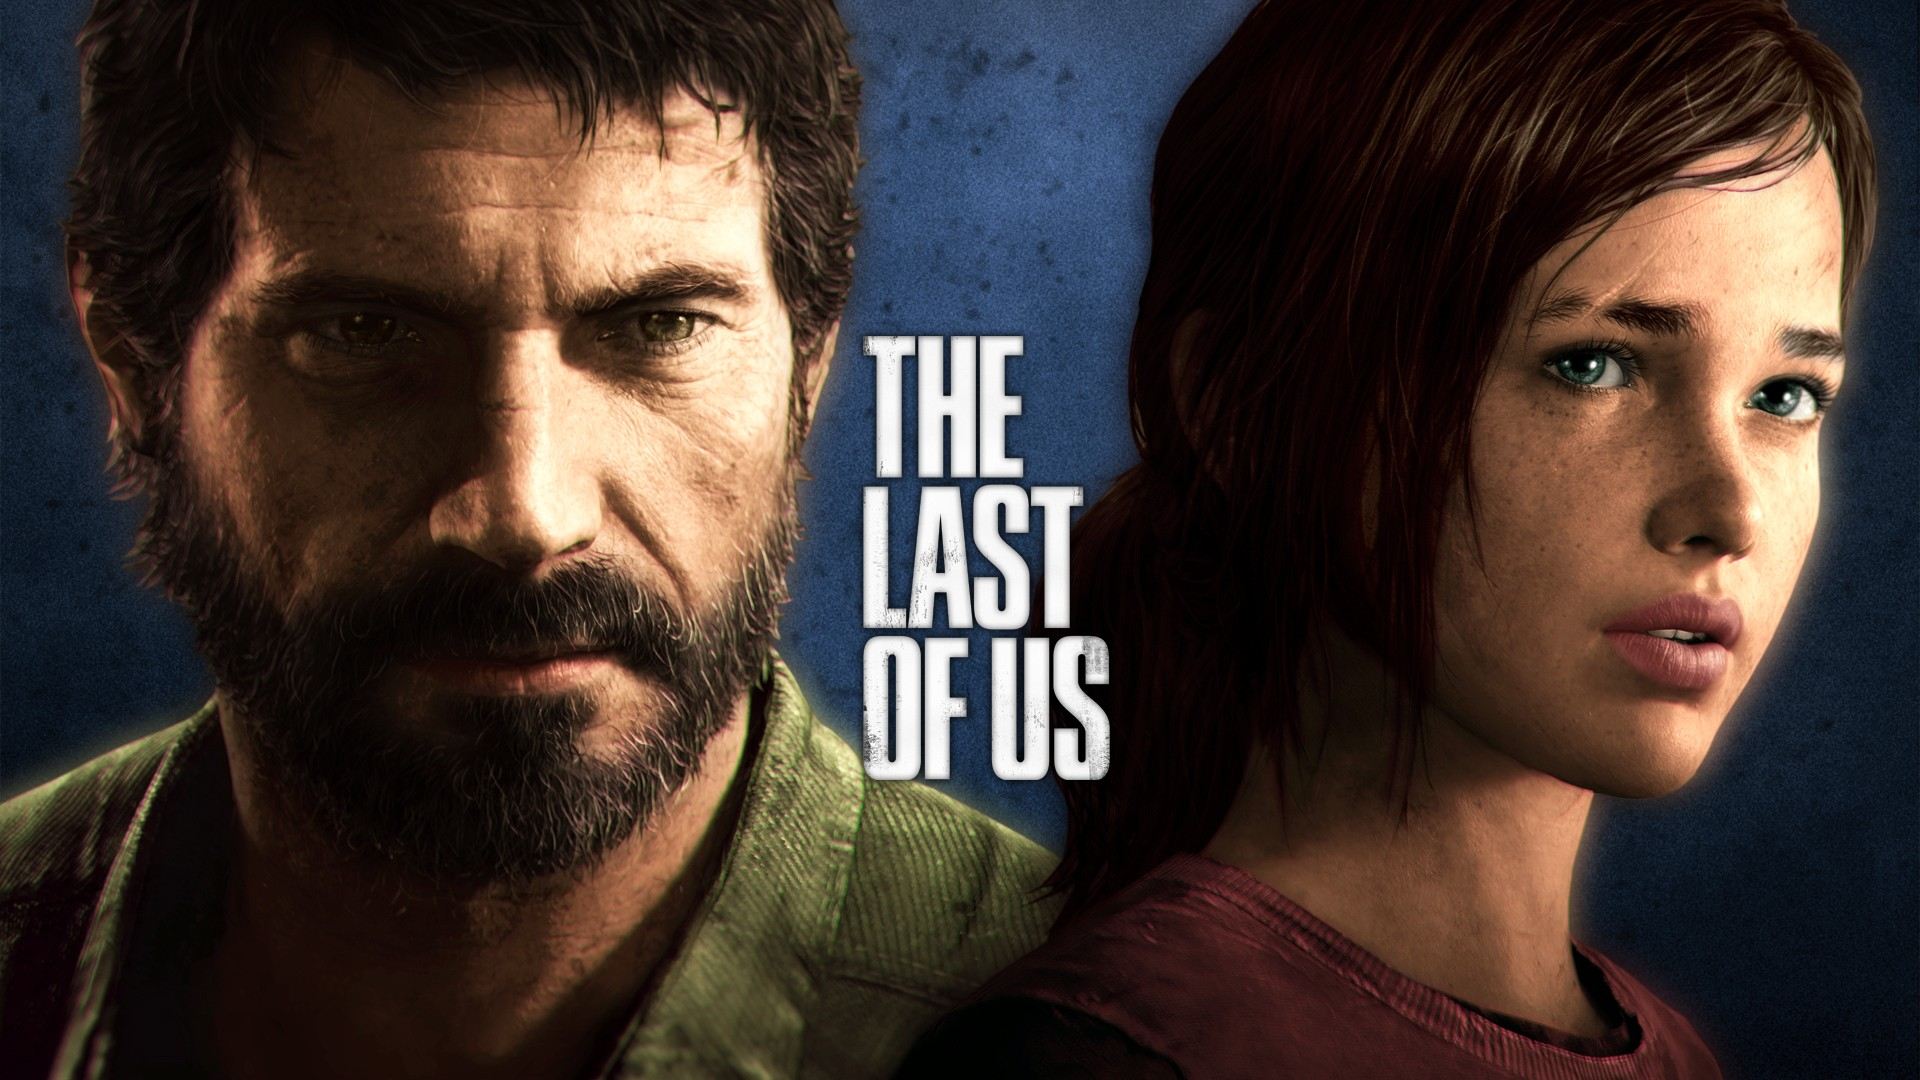 The last of us Joel Ellie ps3 hd wallpaper background   HD Wallpapers 1920x1080